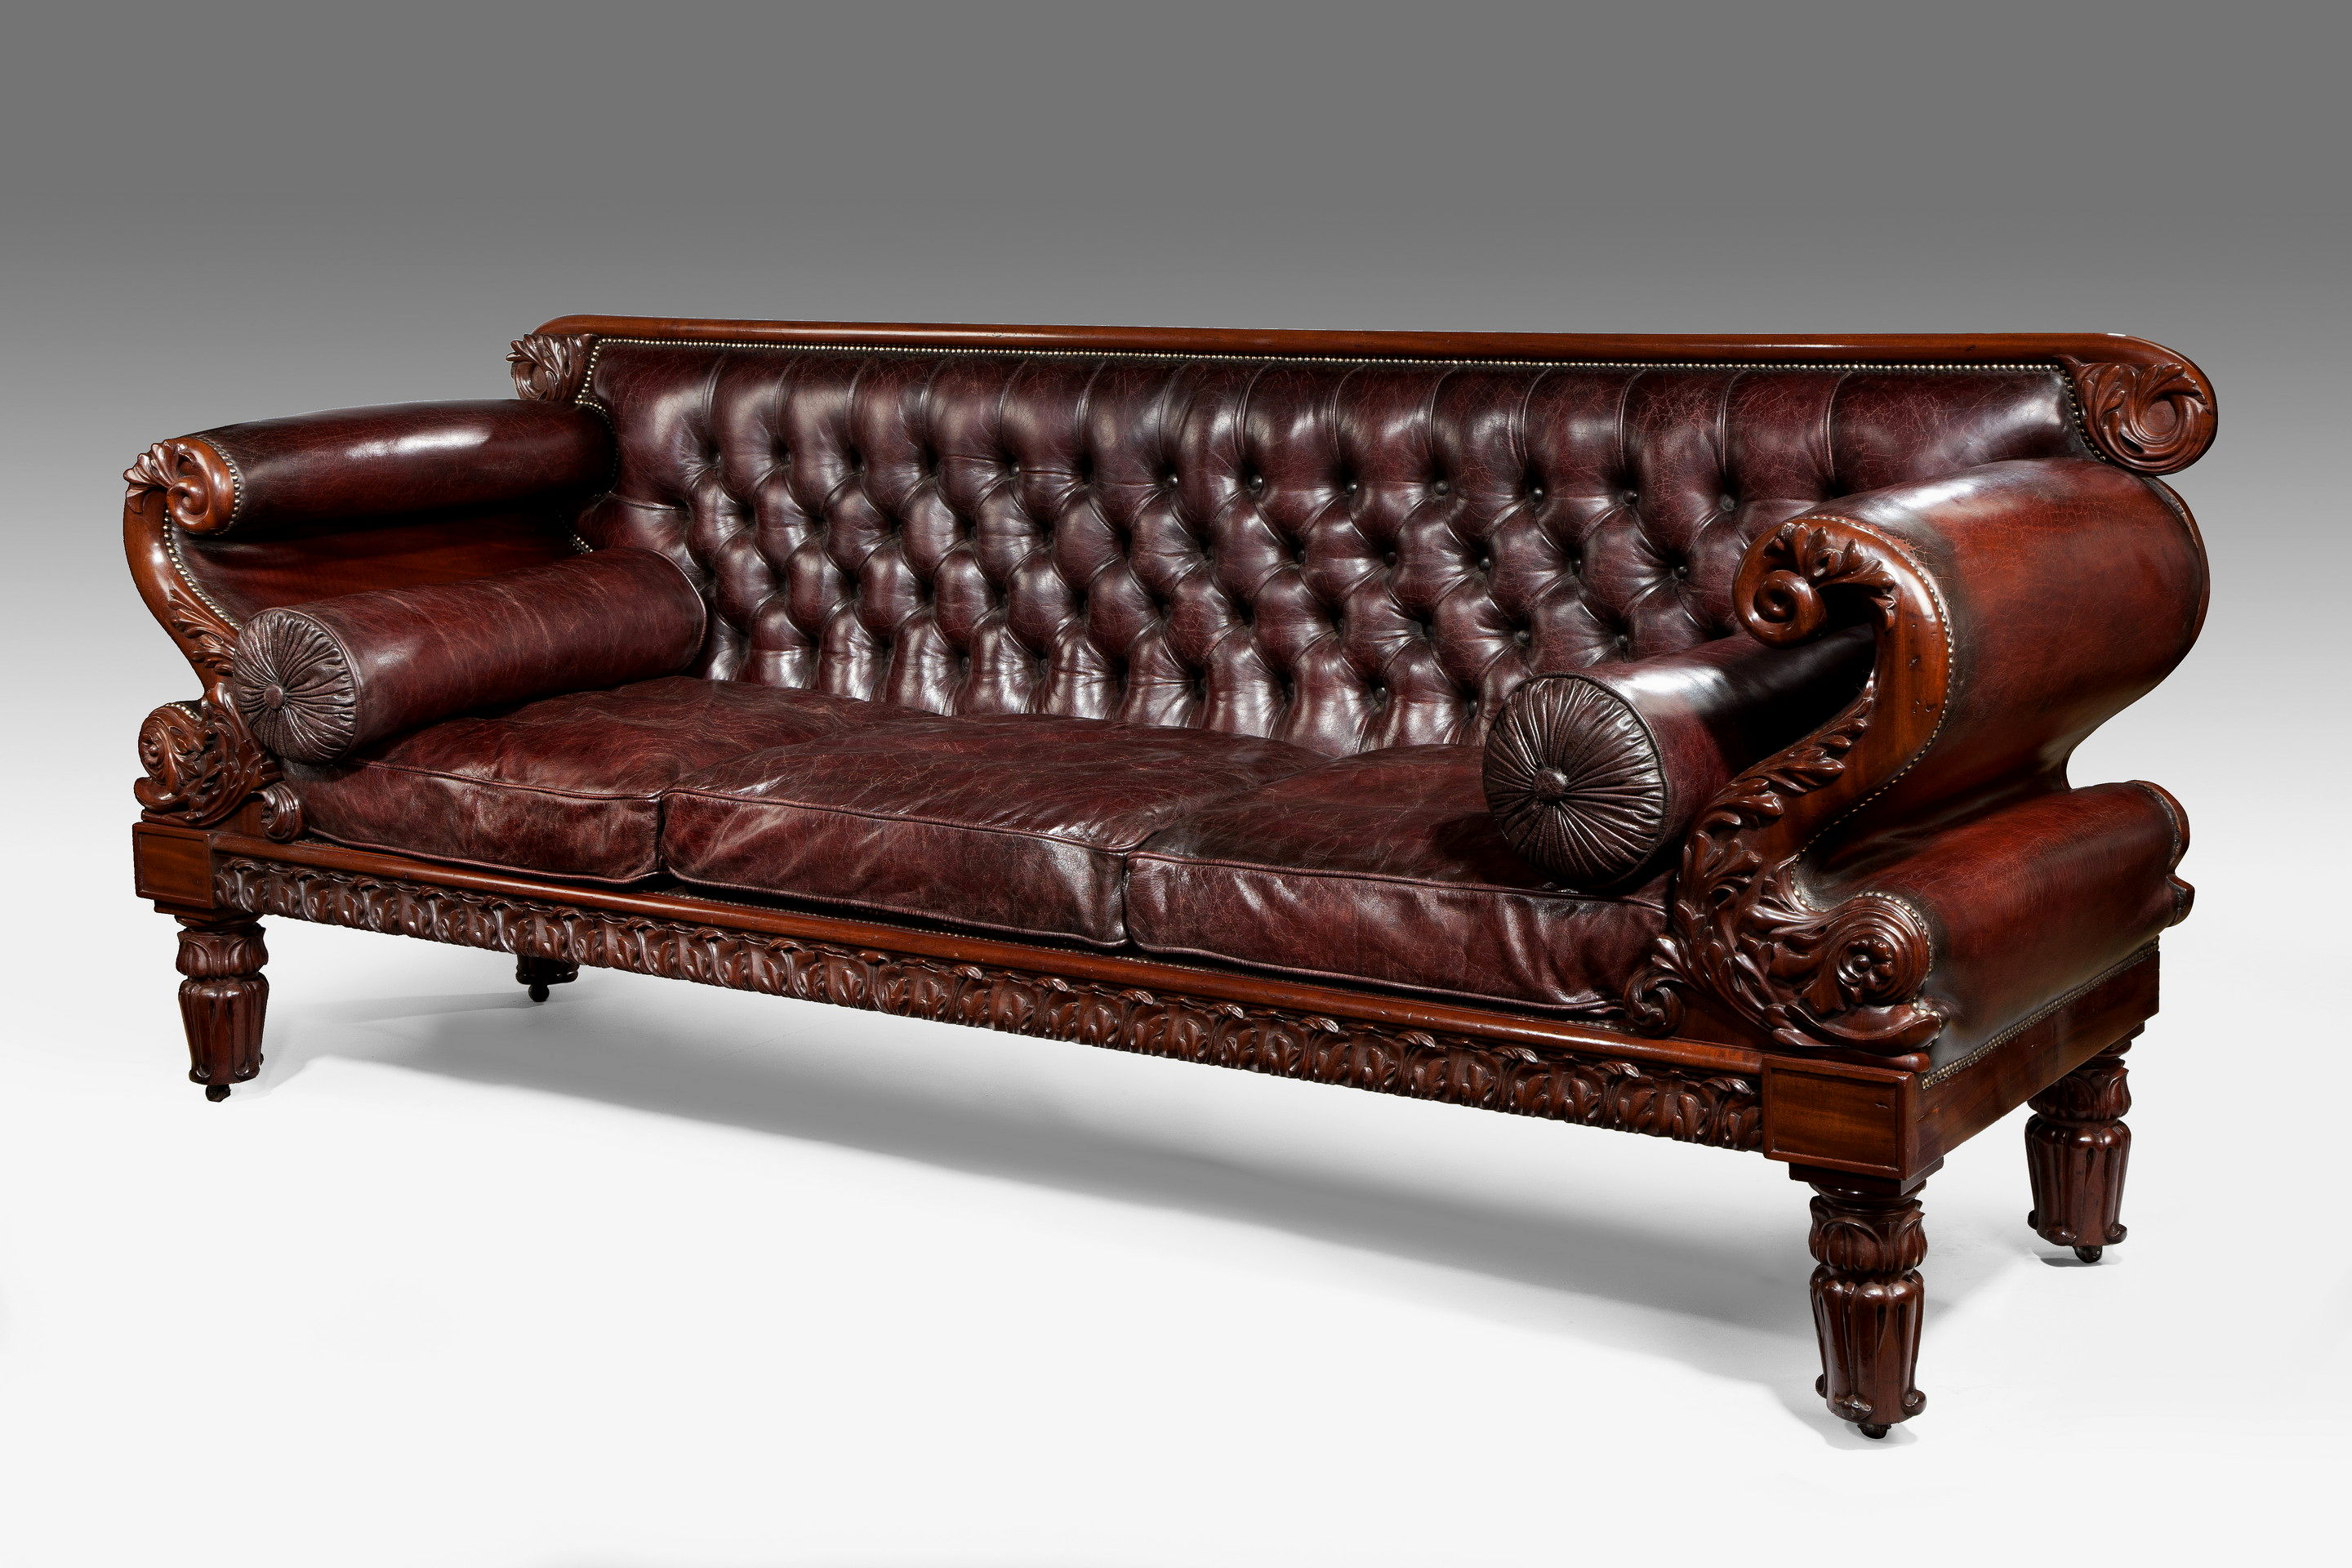 top leather chesterfield sofa design-Lovely Leather Chesterfield sofa Plan